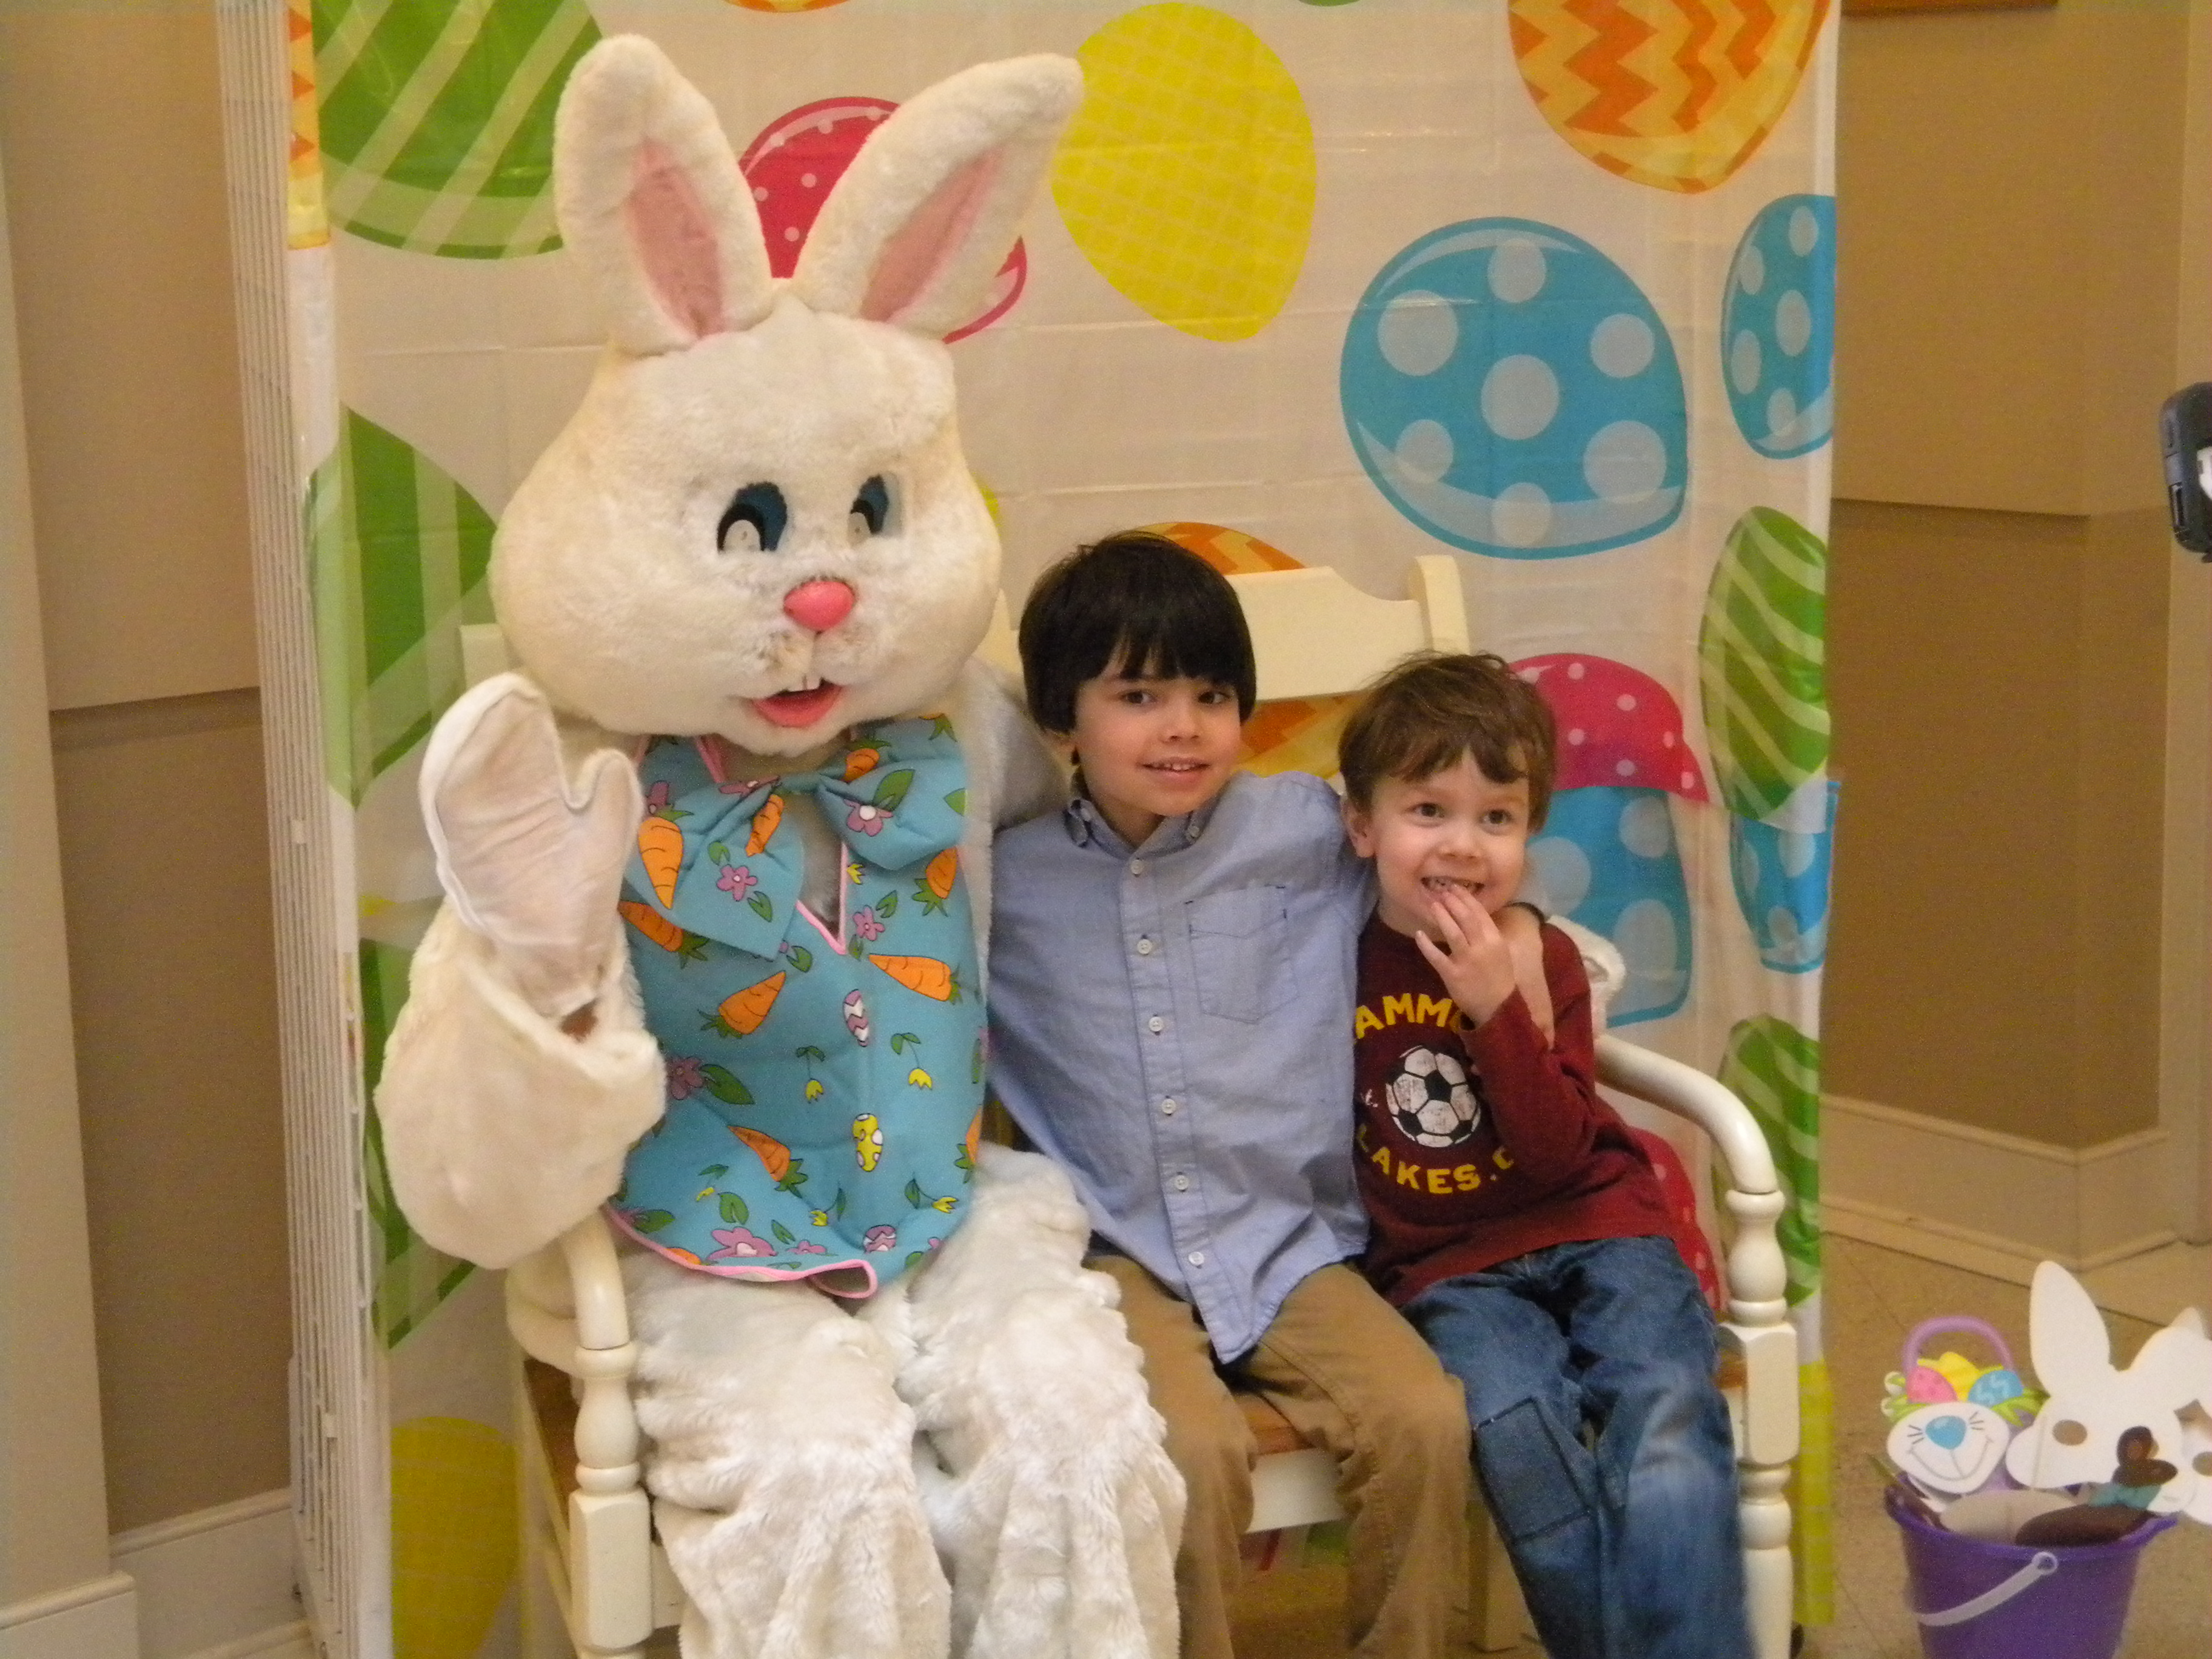 Easter Bunny (Creepy Uncle) Banged Her!